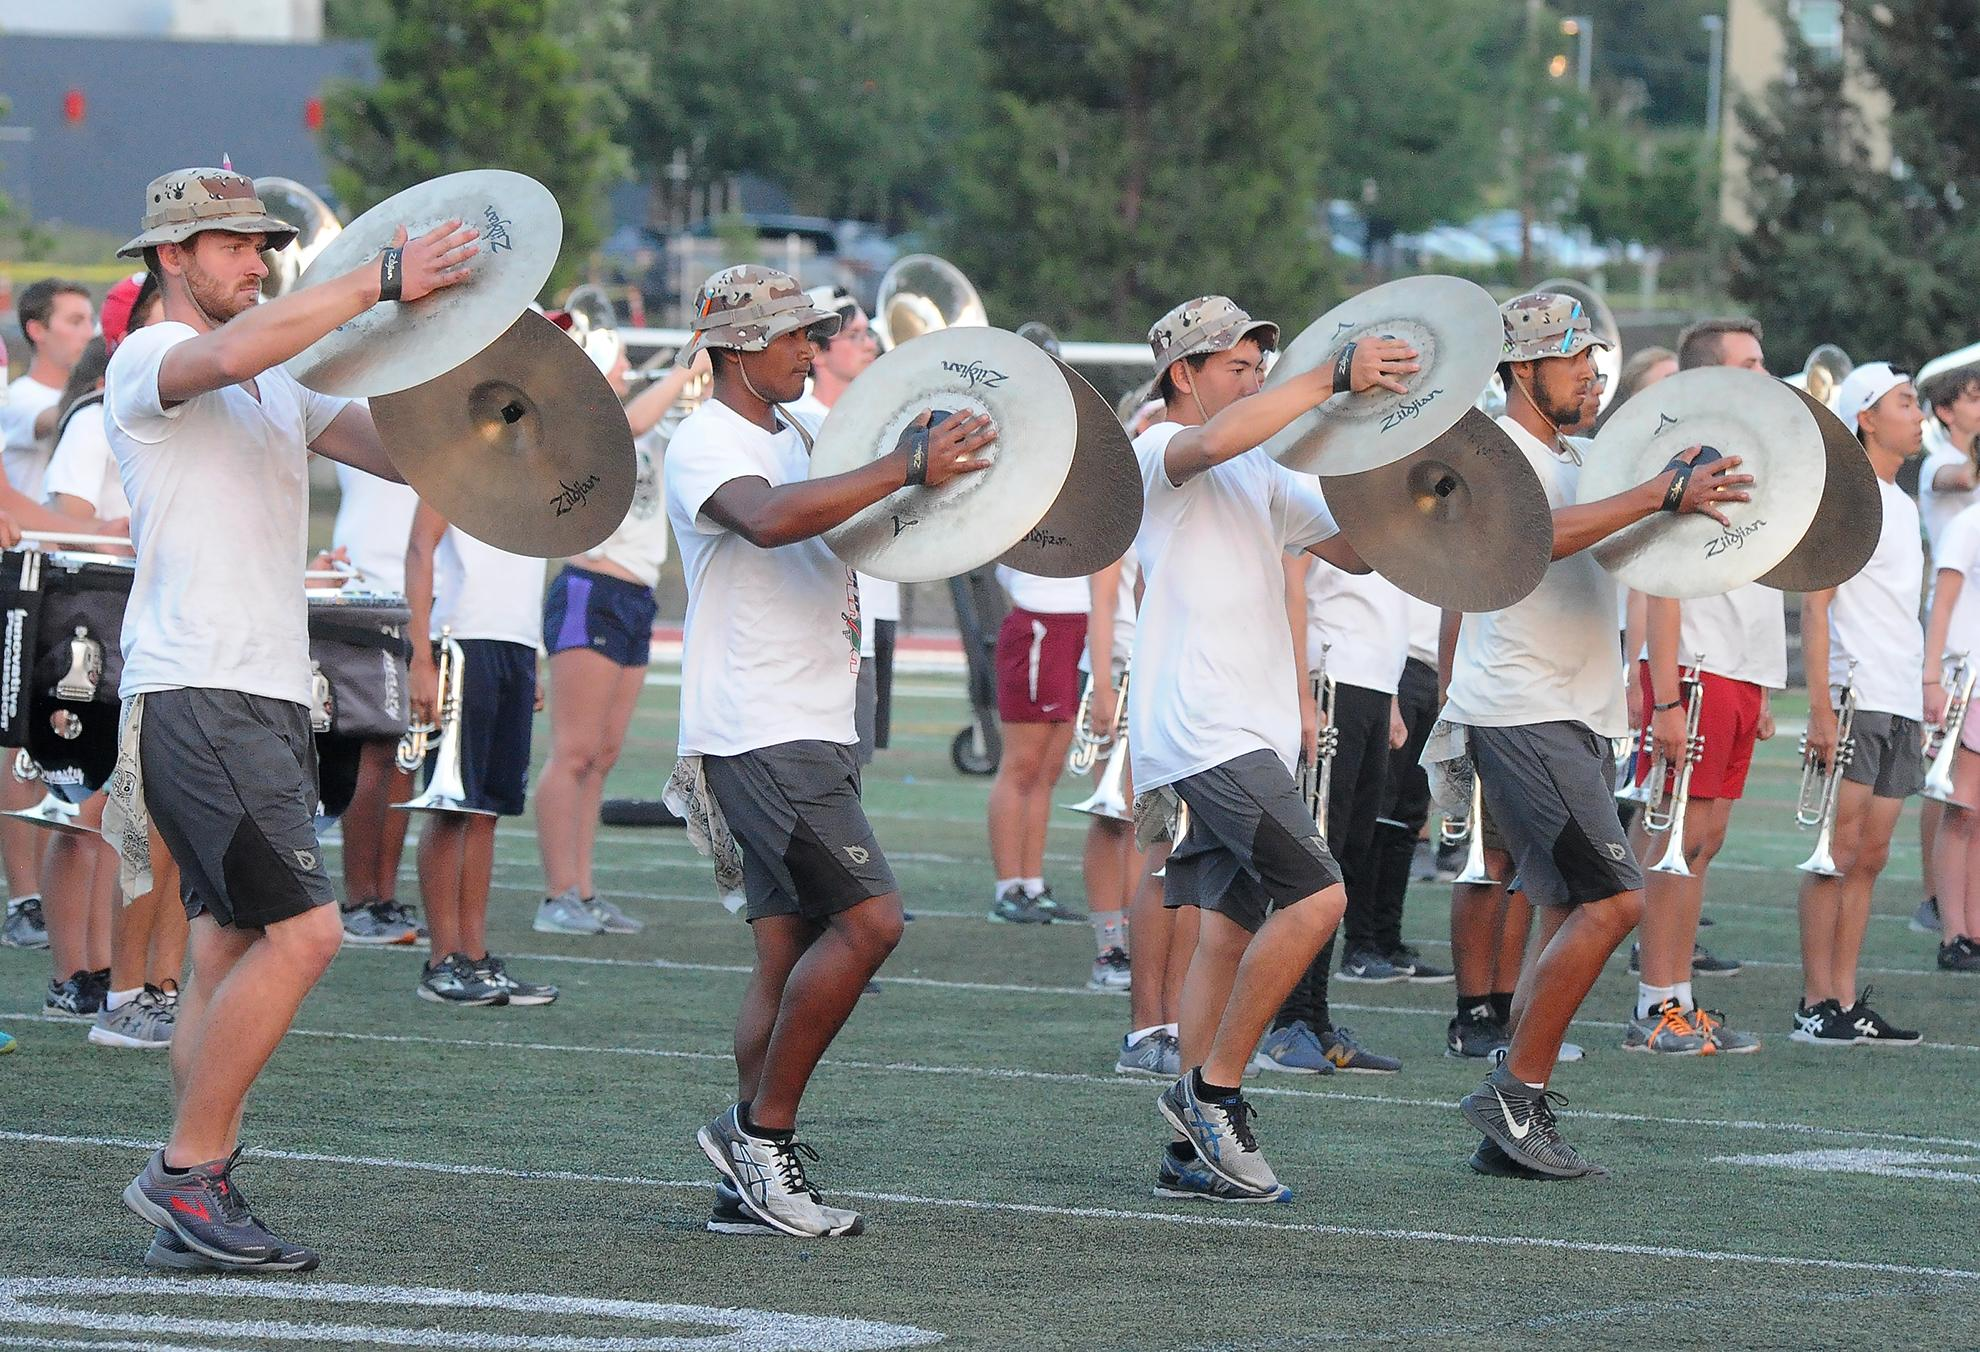 Cymbal players perform as part of the Santa Clara Vanguard Drum and Bugle Corps show. Photo by Denise Baratta